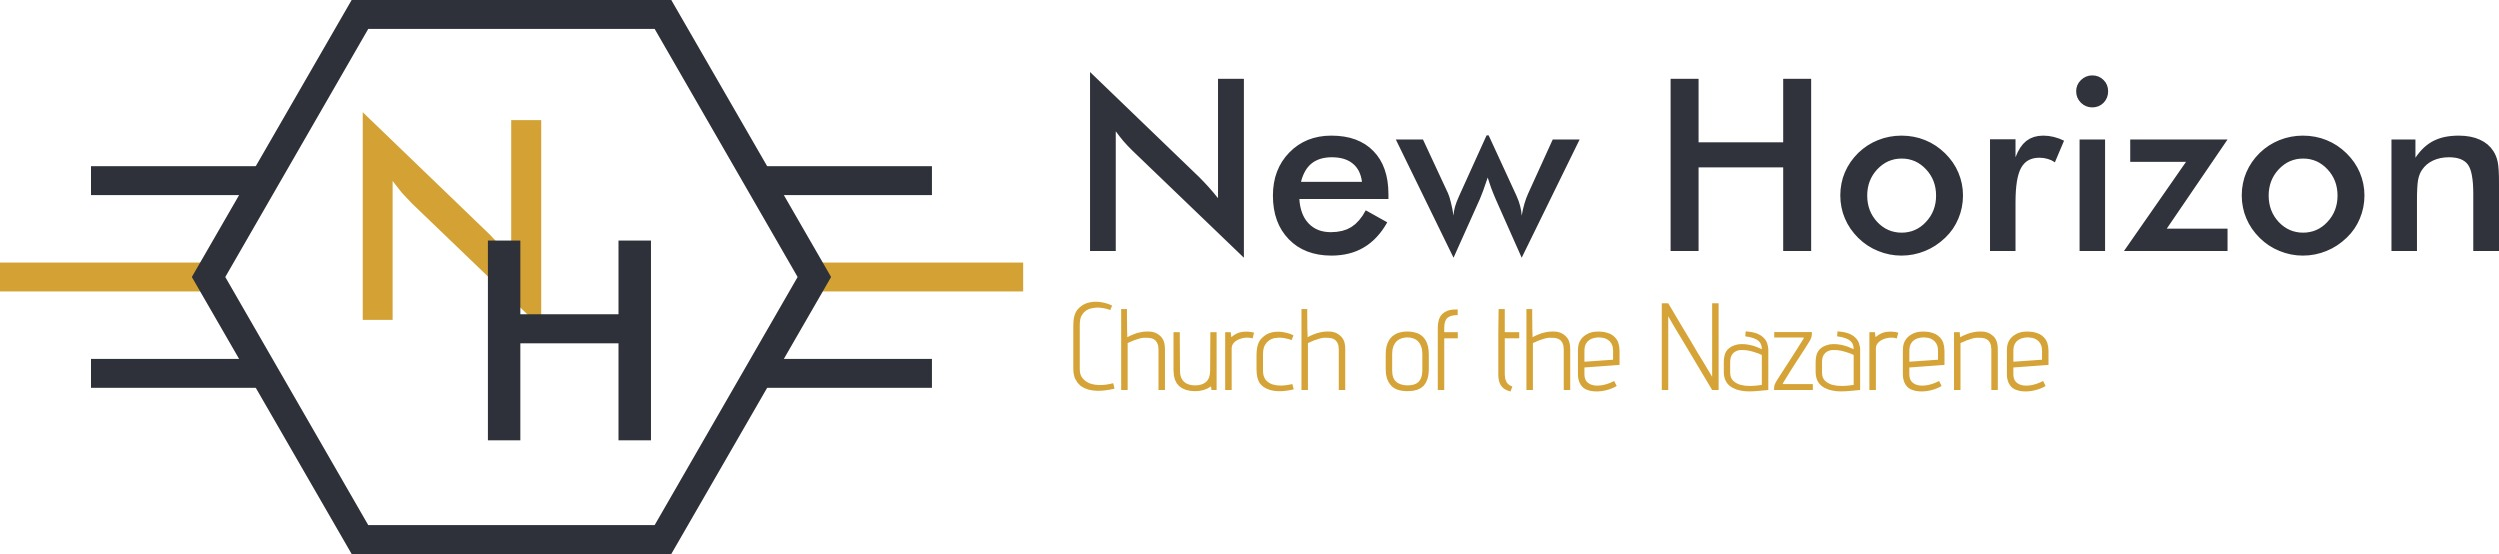 New Horizon Church Of The Nazarene